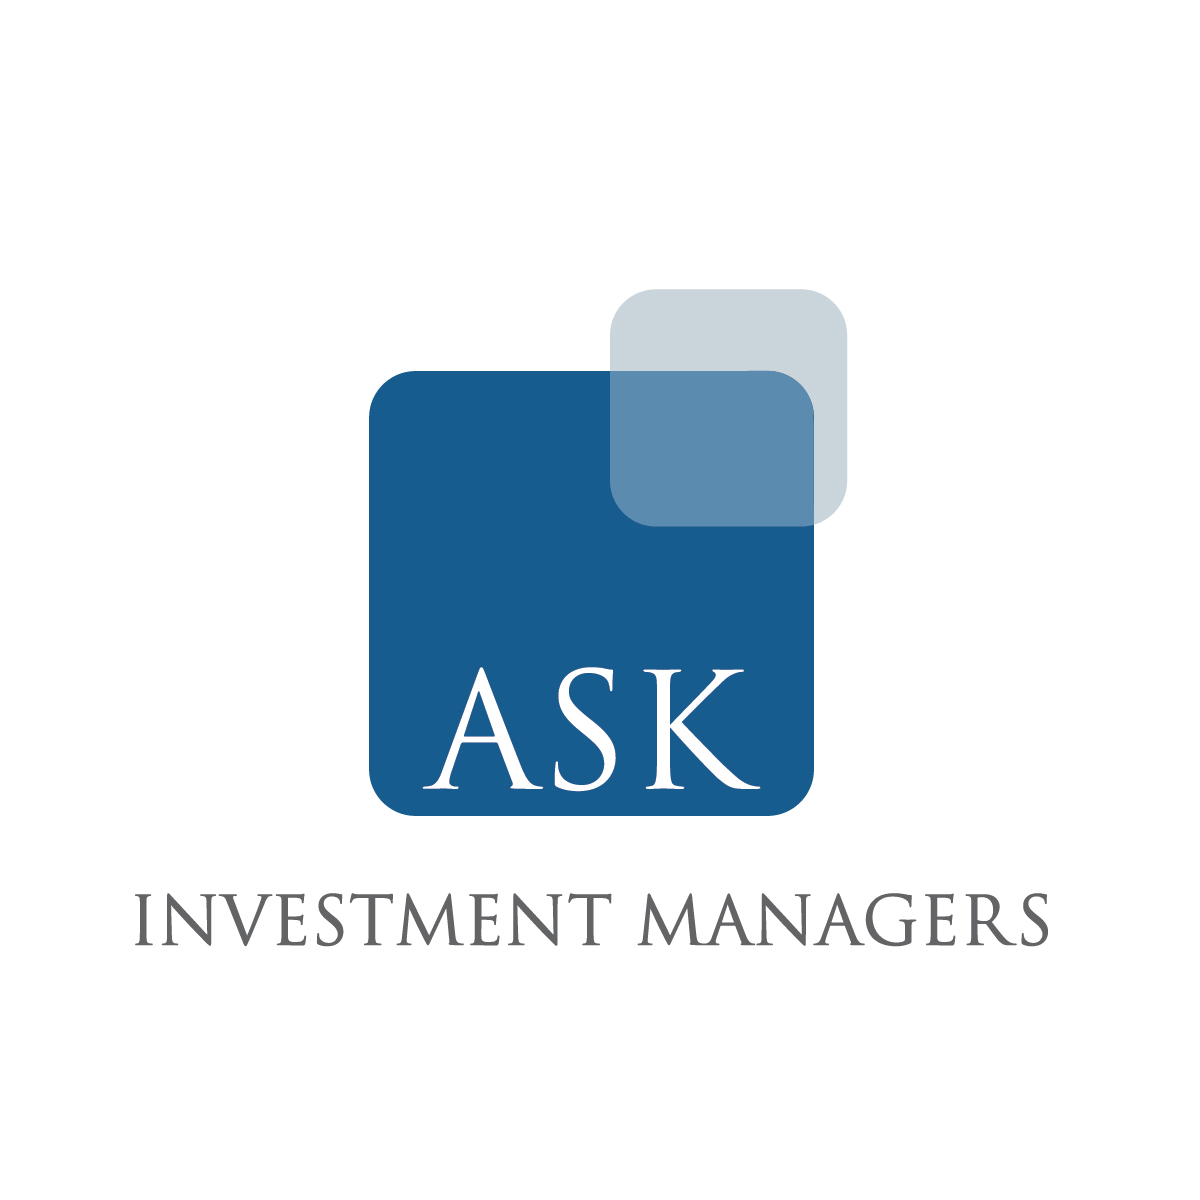 ASK Investment Managers Ltd